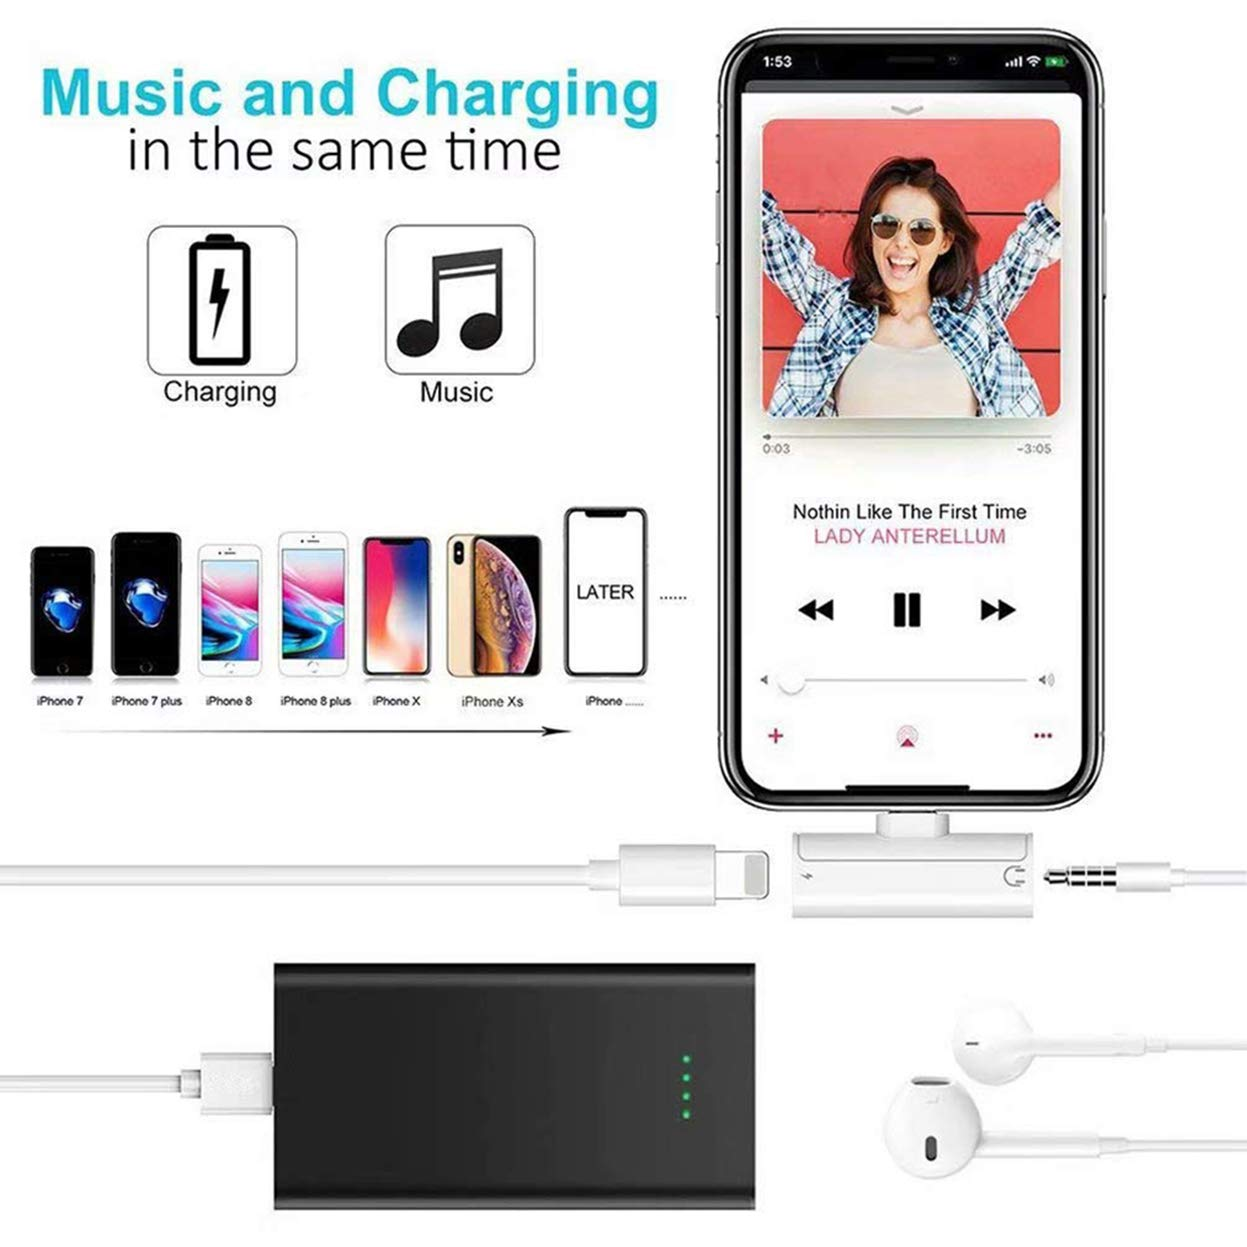 Adaptador de Auriculares para iPhone Audio Dongle Jack de 3,5 mm Convertidor de Cable Adaptador de Cable Compatible para iPhone XS//XR//X 7//7 Plus Accesorios para Auriculares Todo iOS 8//8 Plus